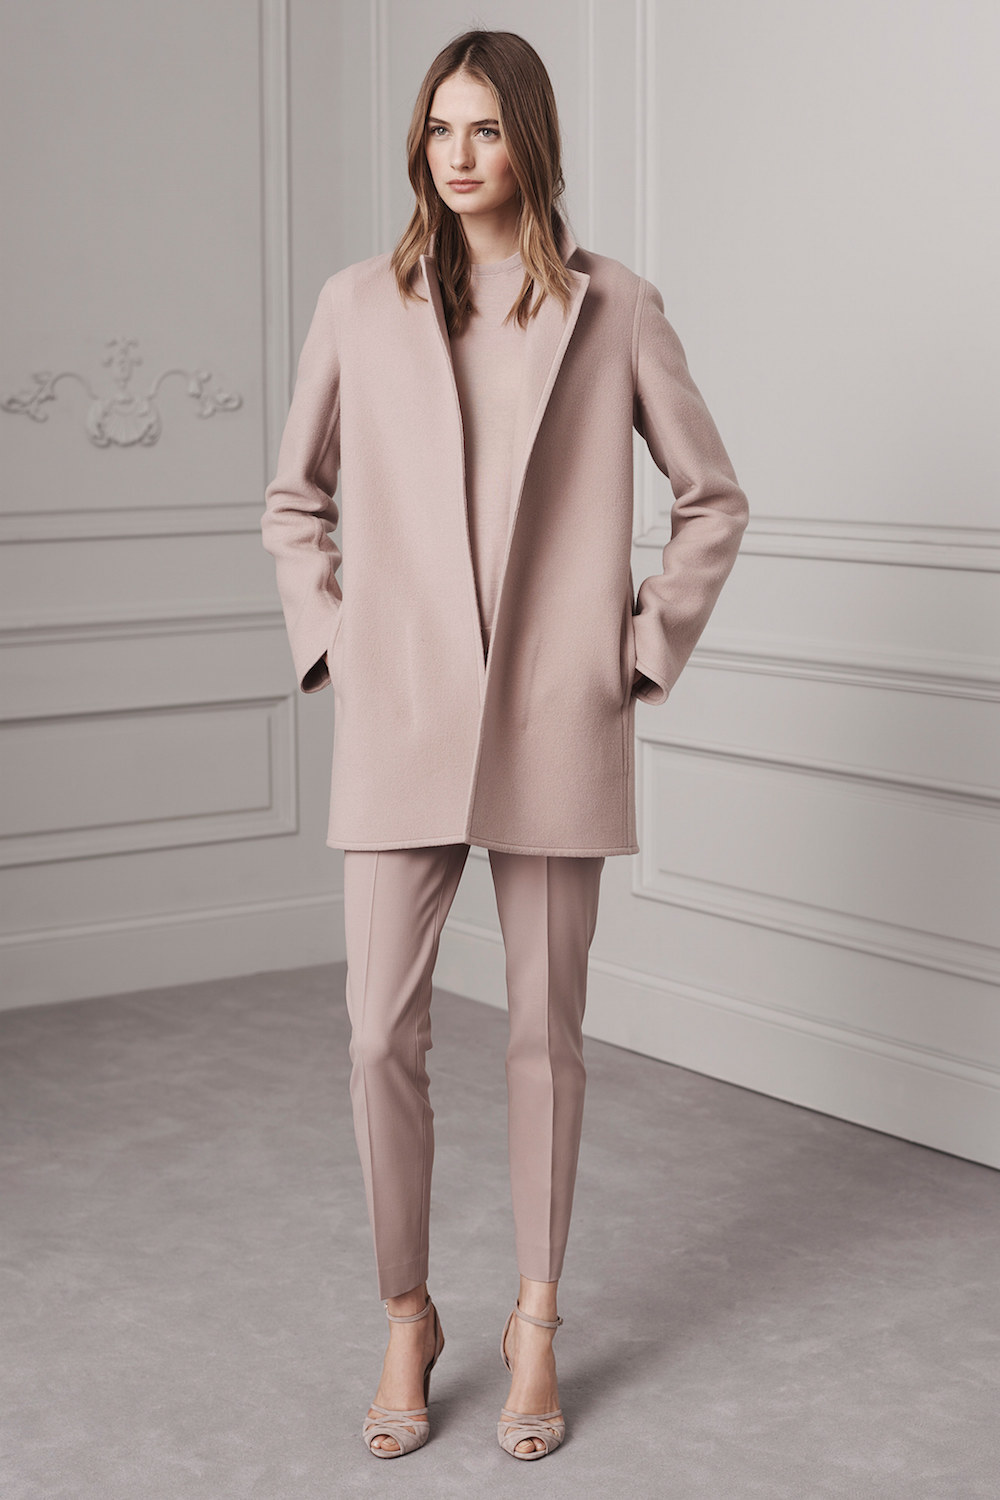 ralph-lauren coat and suit